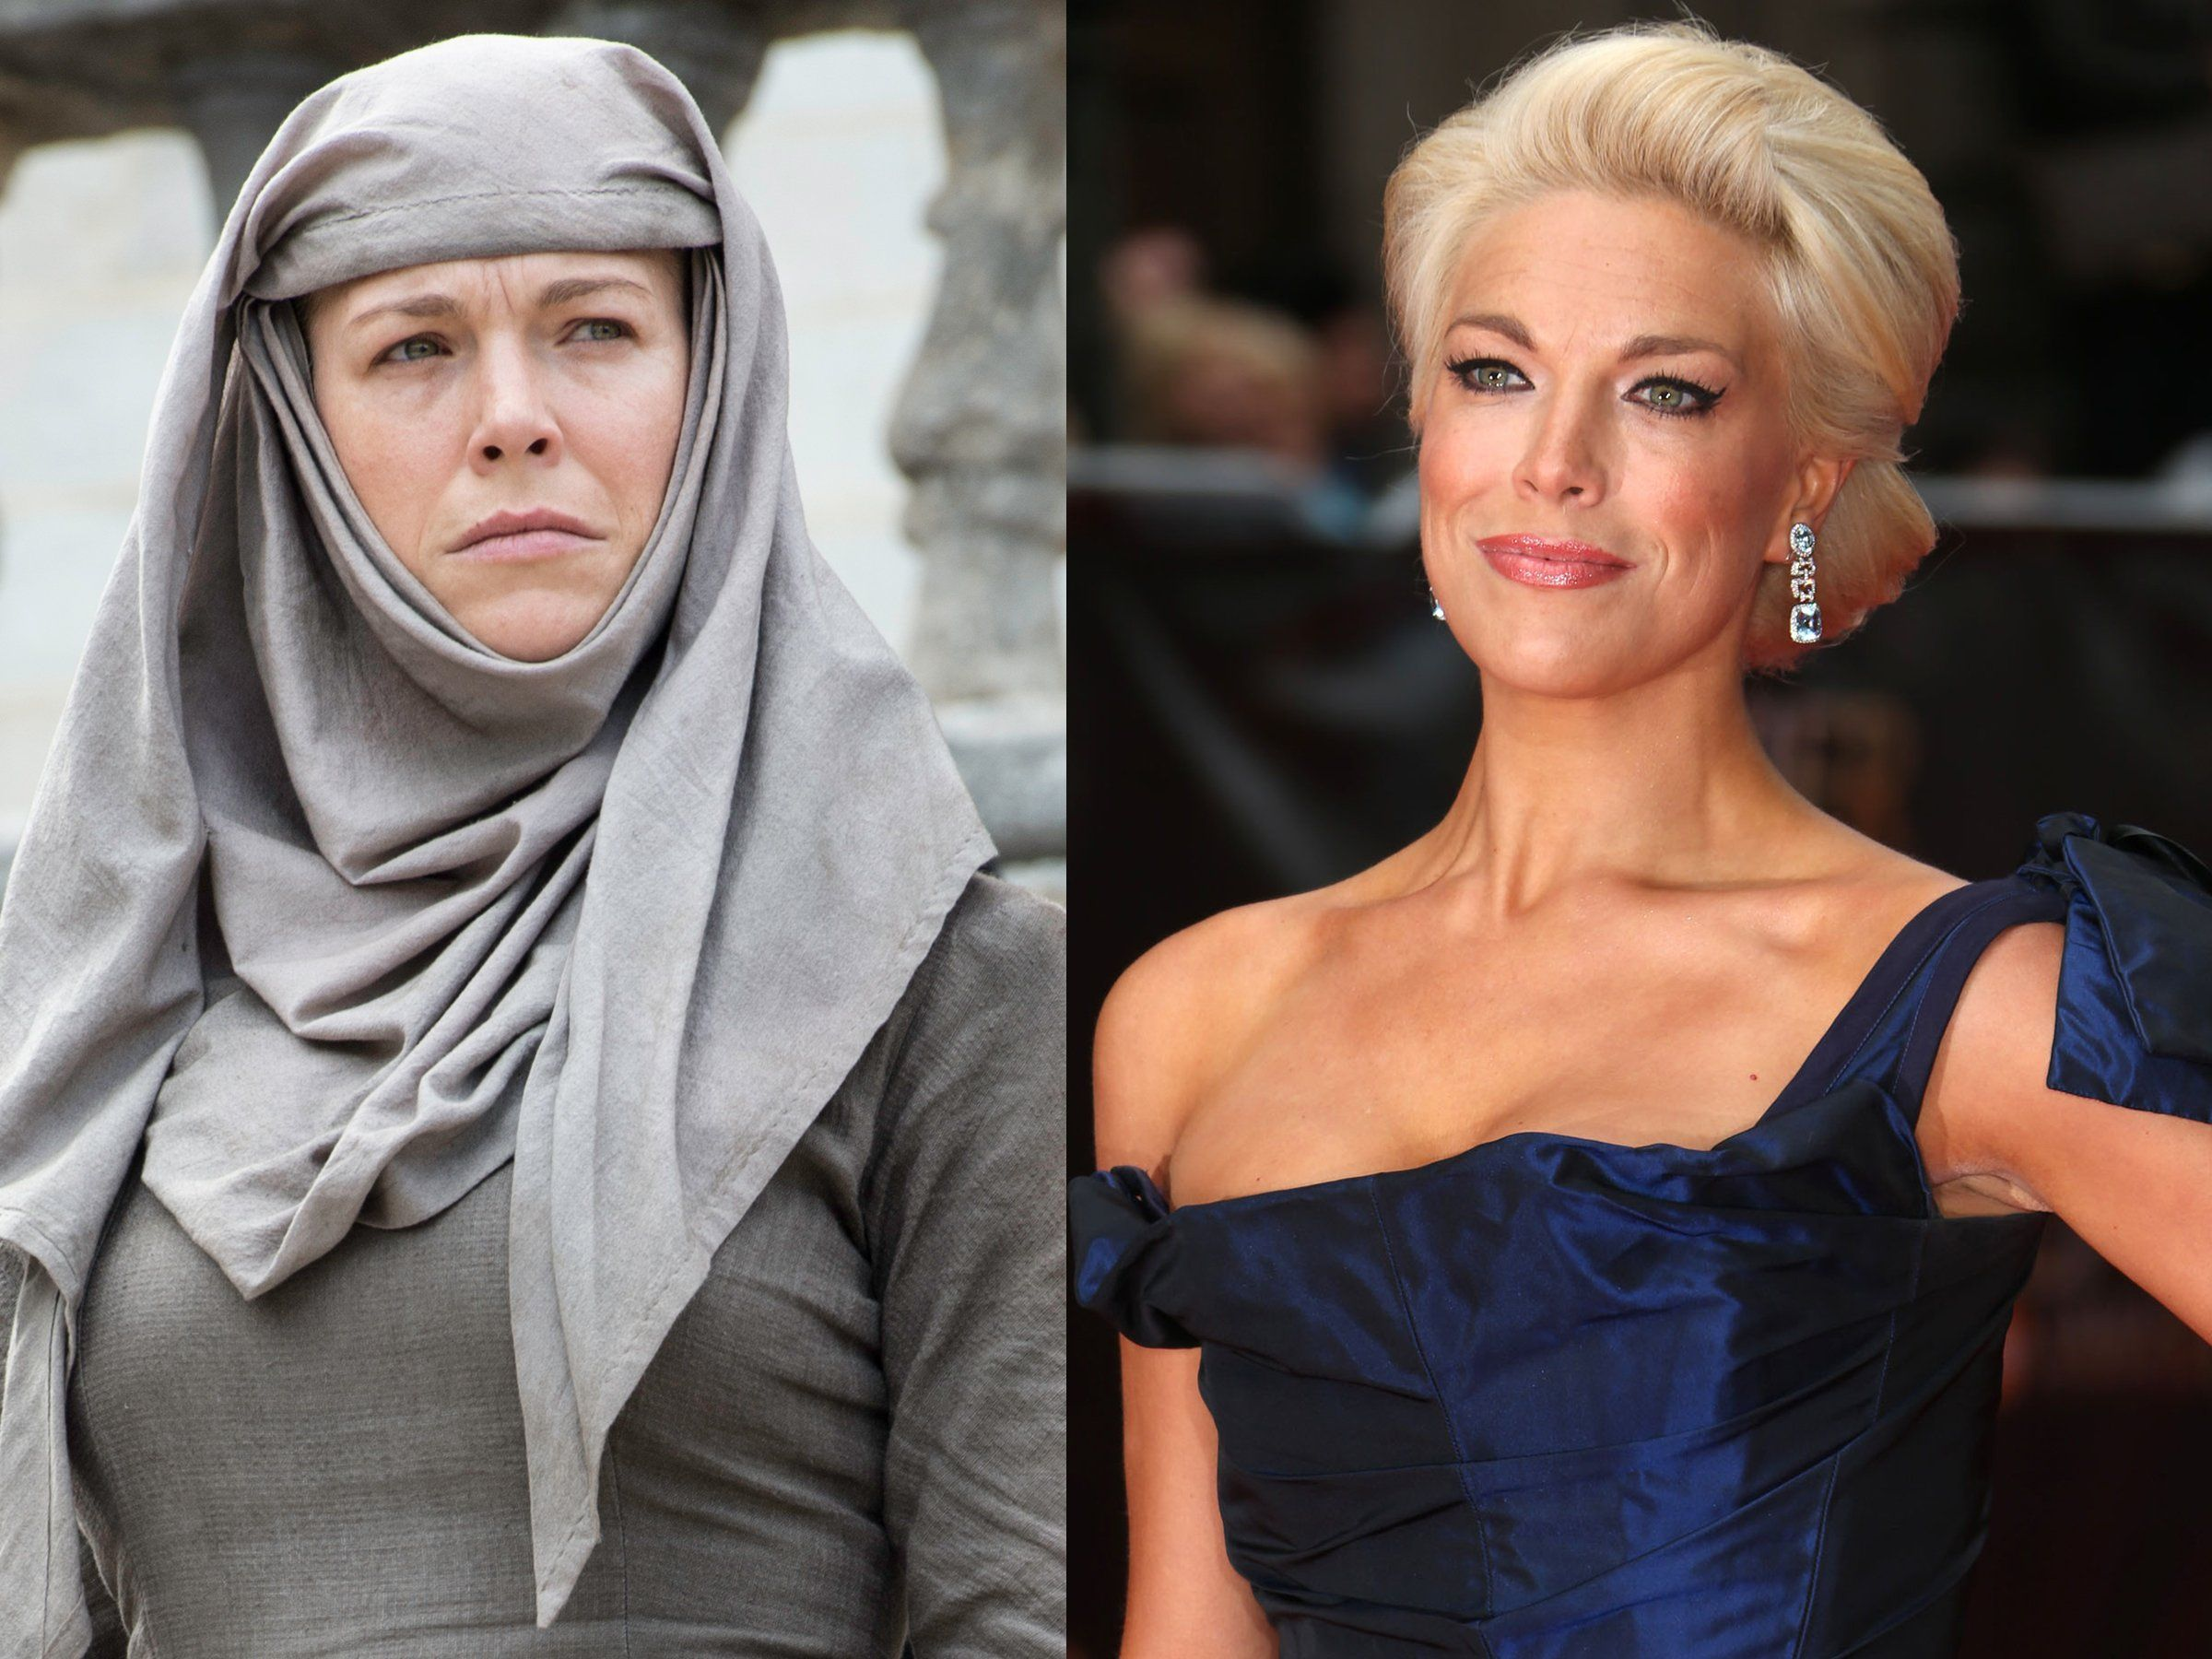 Here's what the entire 'Game of Thrones' cast looks like